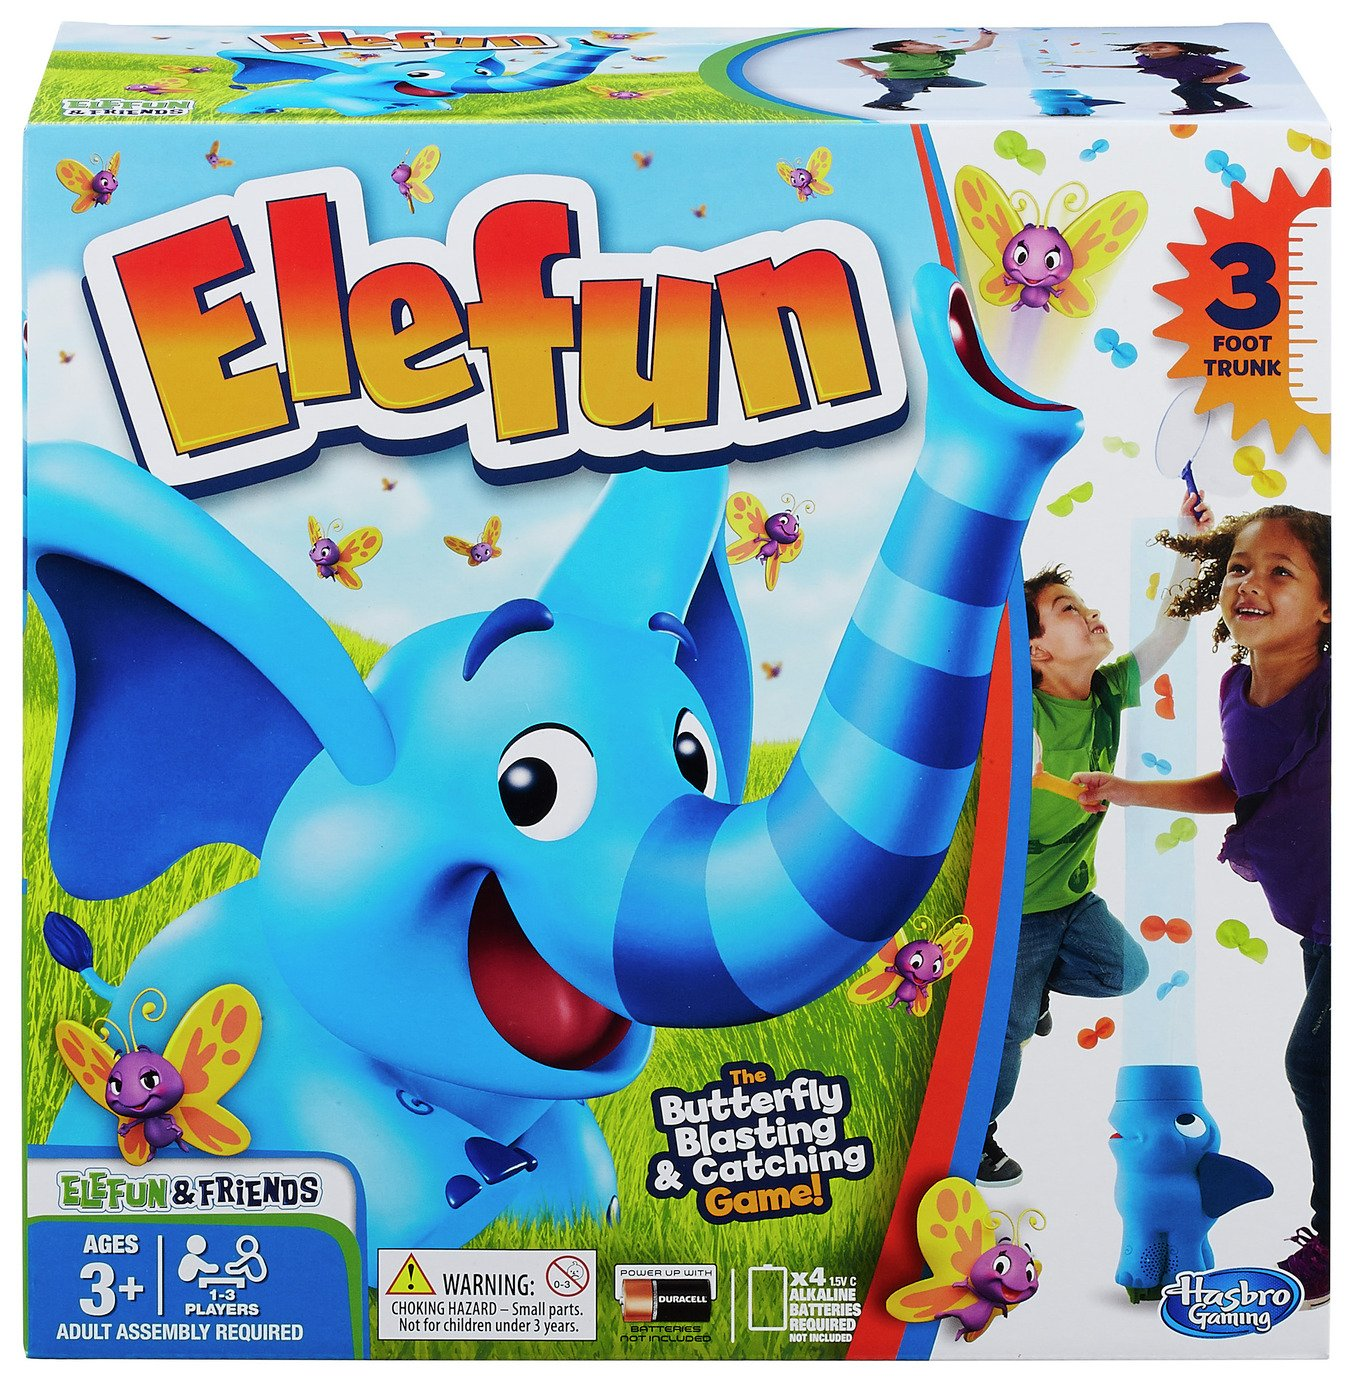 Elefun from Hasbro Gaming